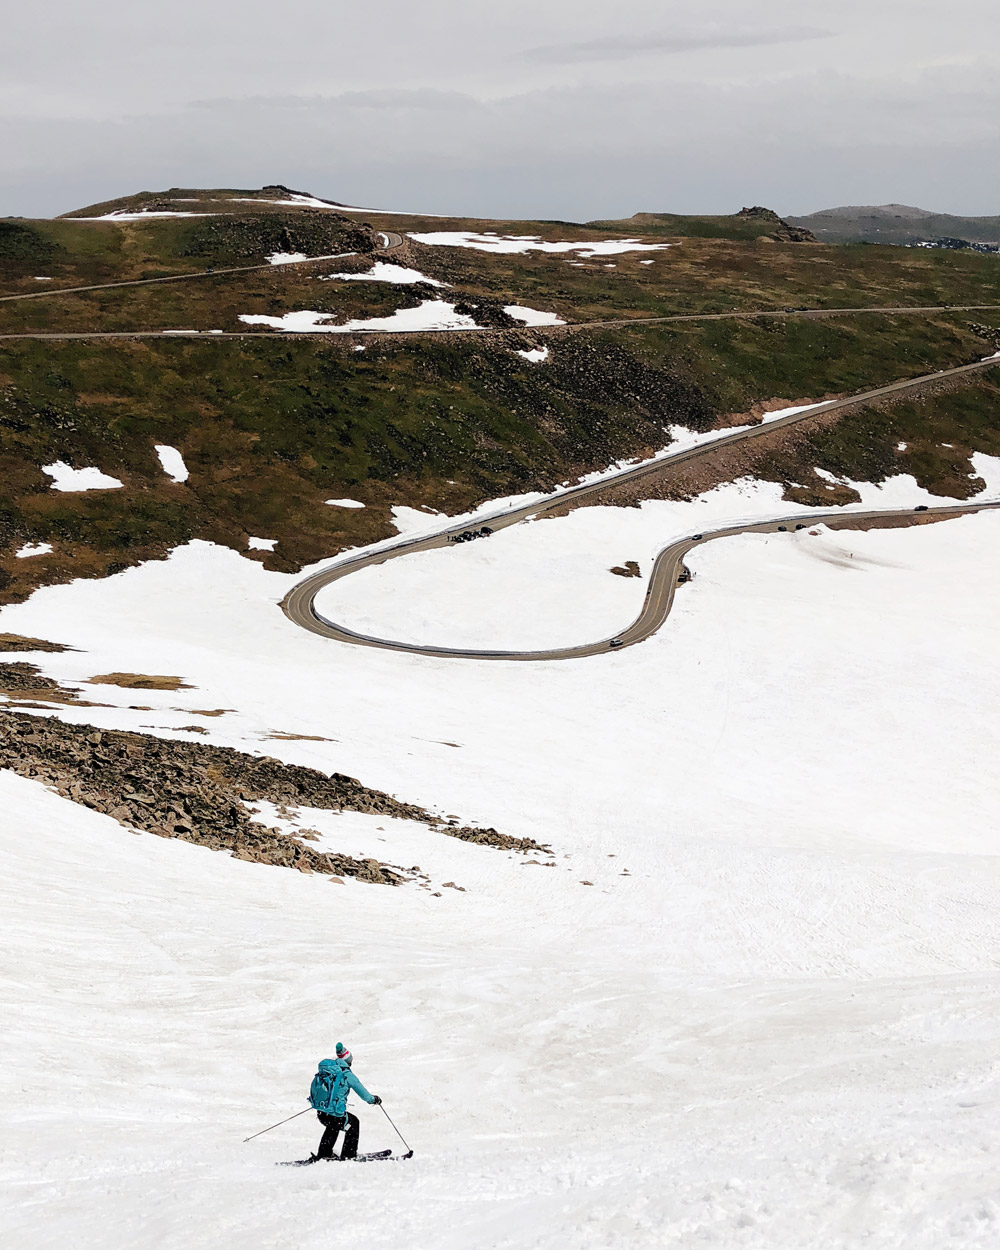 backcountry skiing down from Reefer Ridge on the Beartooth Highway